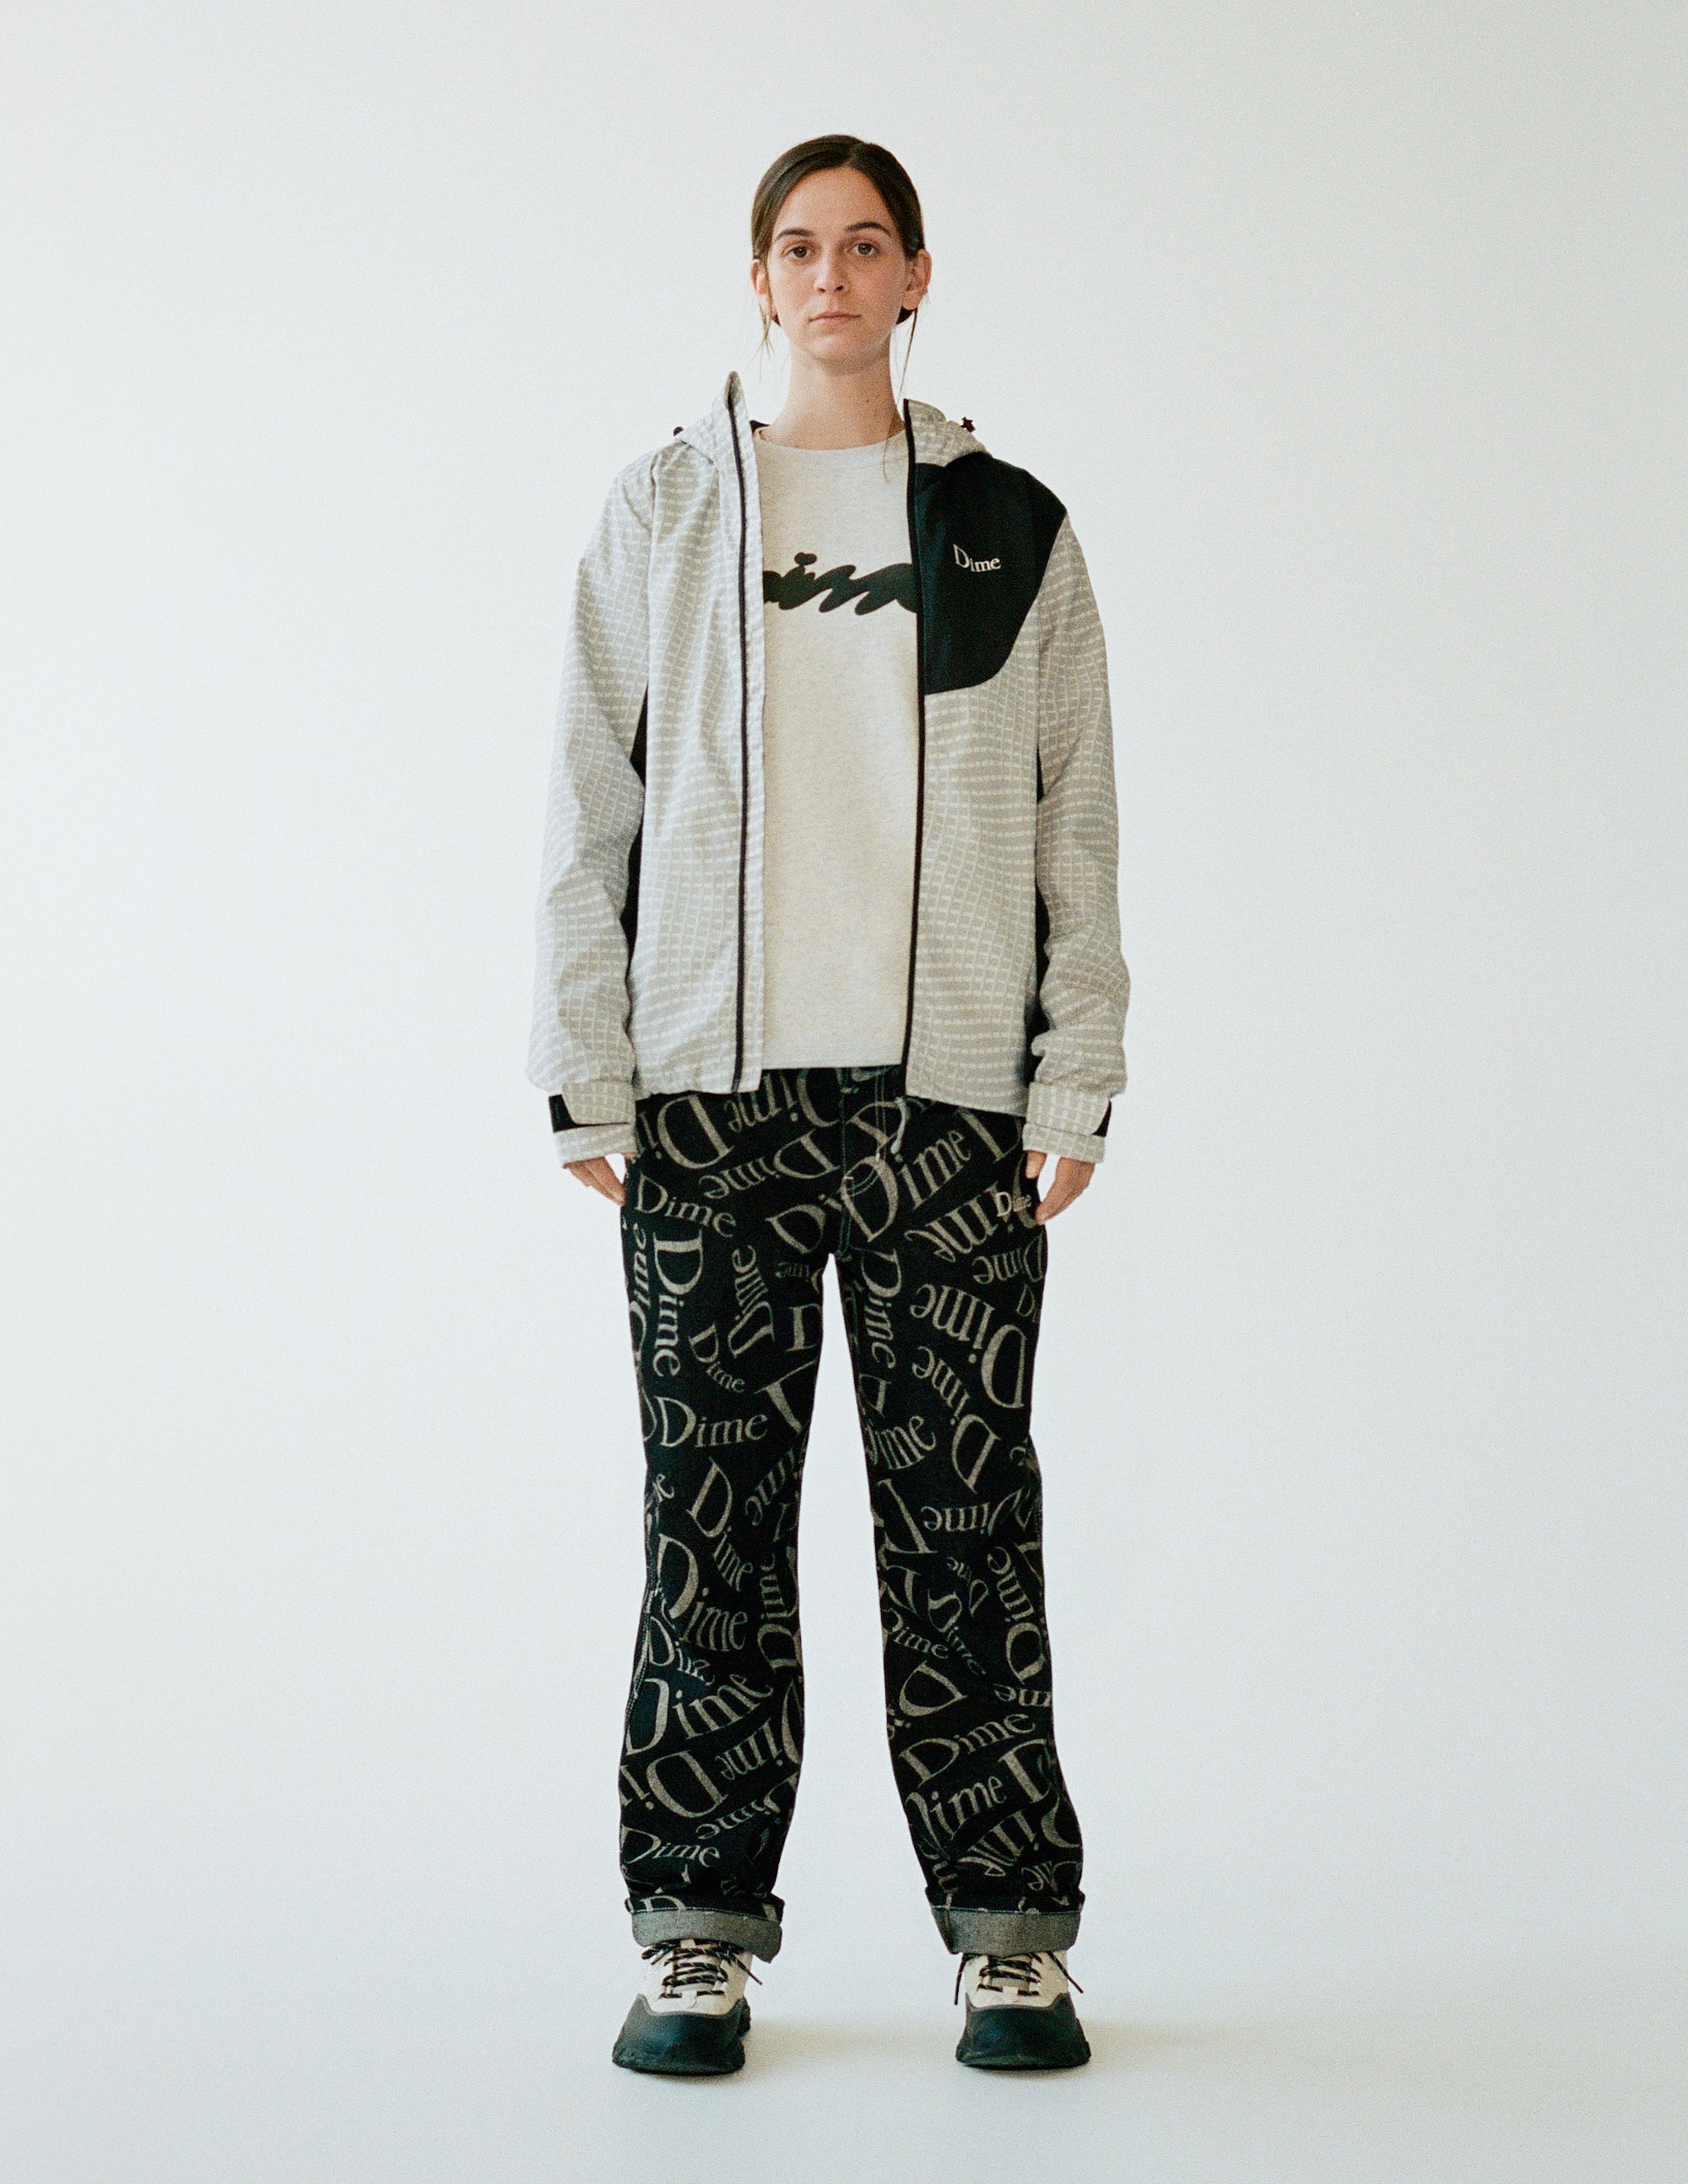 Dime Spring 2021 Lookbook Warp Shell Windbreaker in Gray styled with Online Exlusive Cotton Denim Pants in Black with an All Over Logo Print and Bubbly Crewneck in Ash Grey